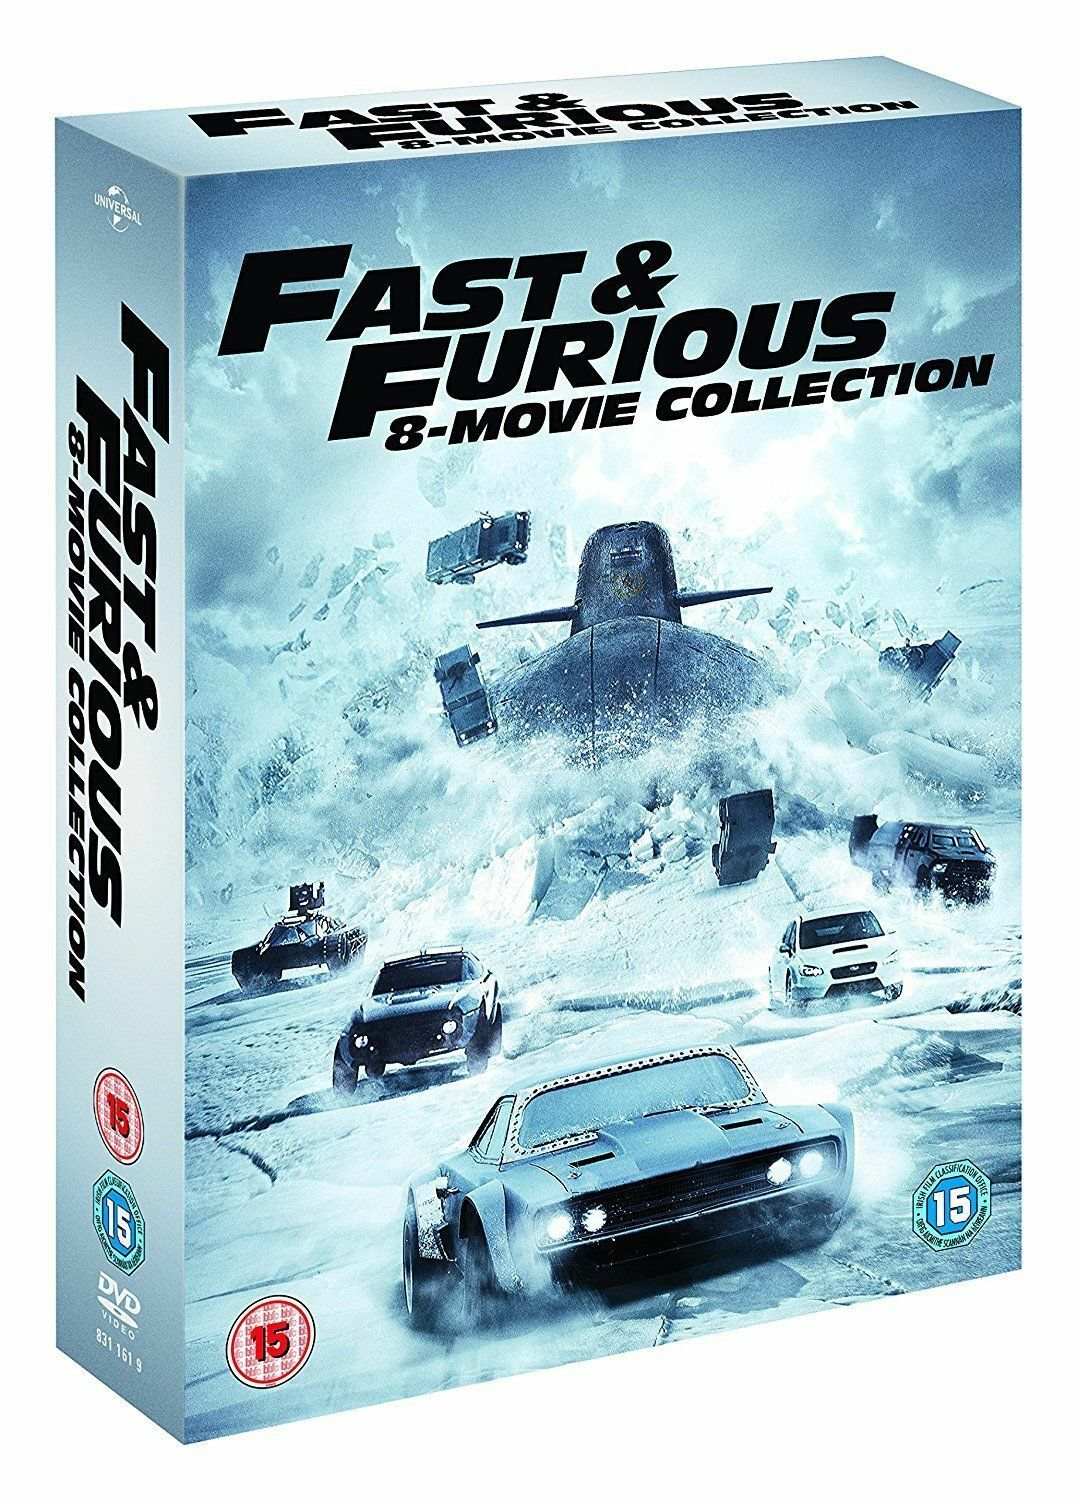 fast and furious full movie 1 8 complete eight movie collection dvd box set new. Black Bedroom Furniture Sets. Home Design Ideas